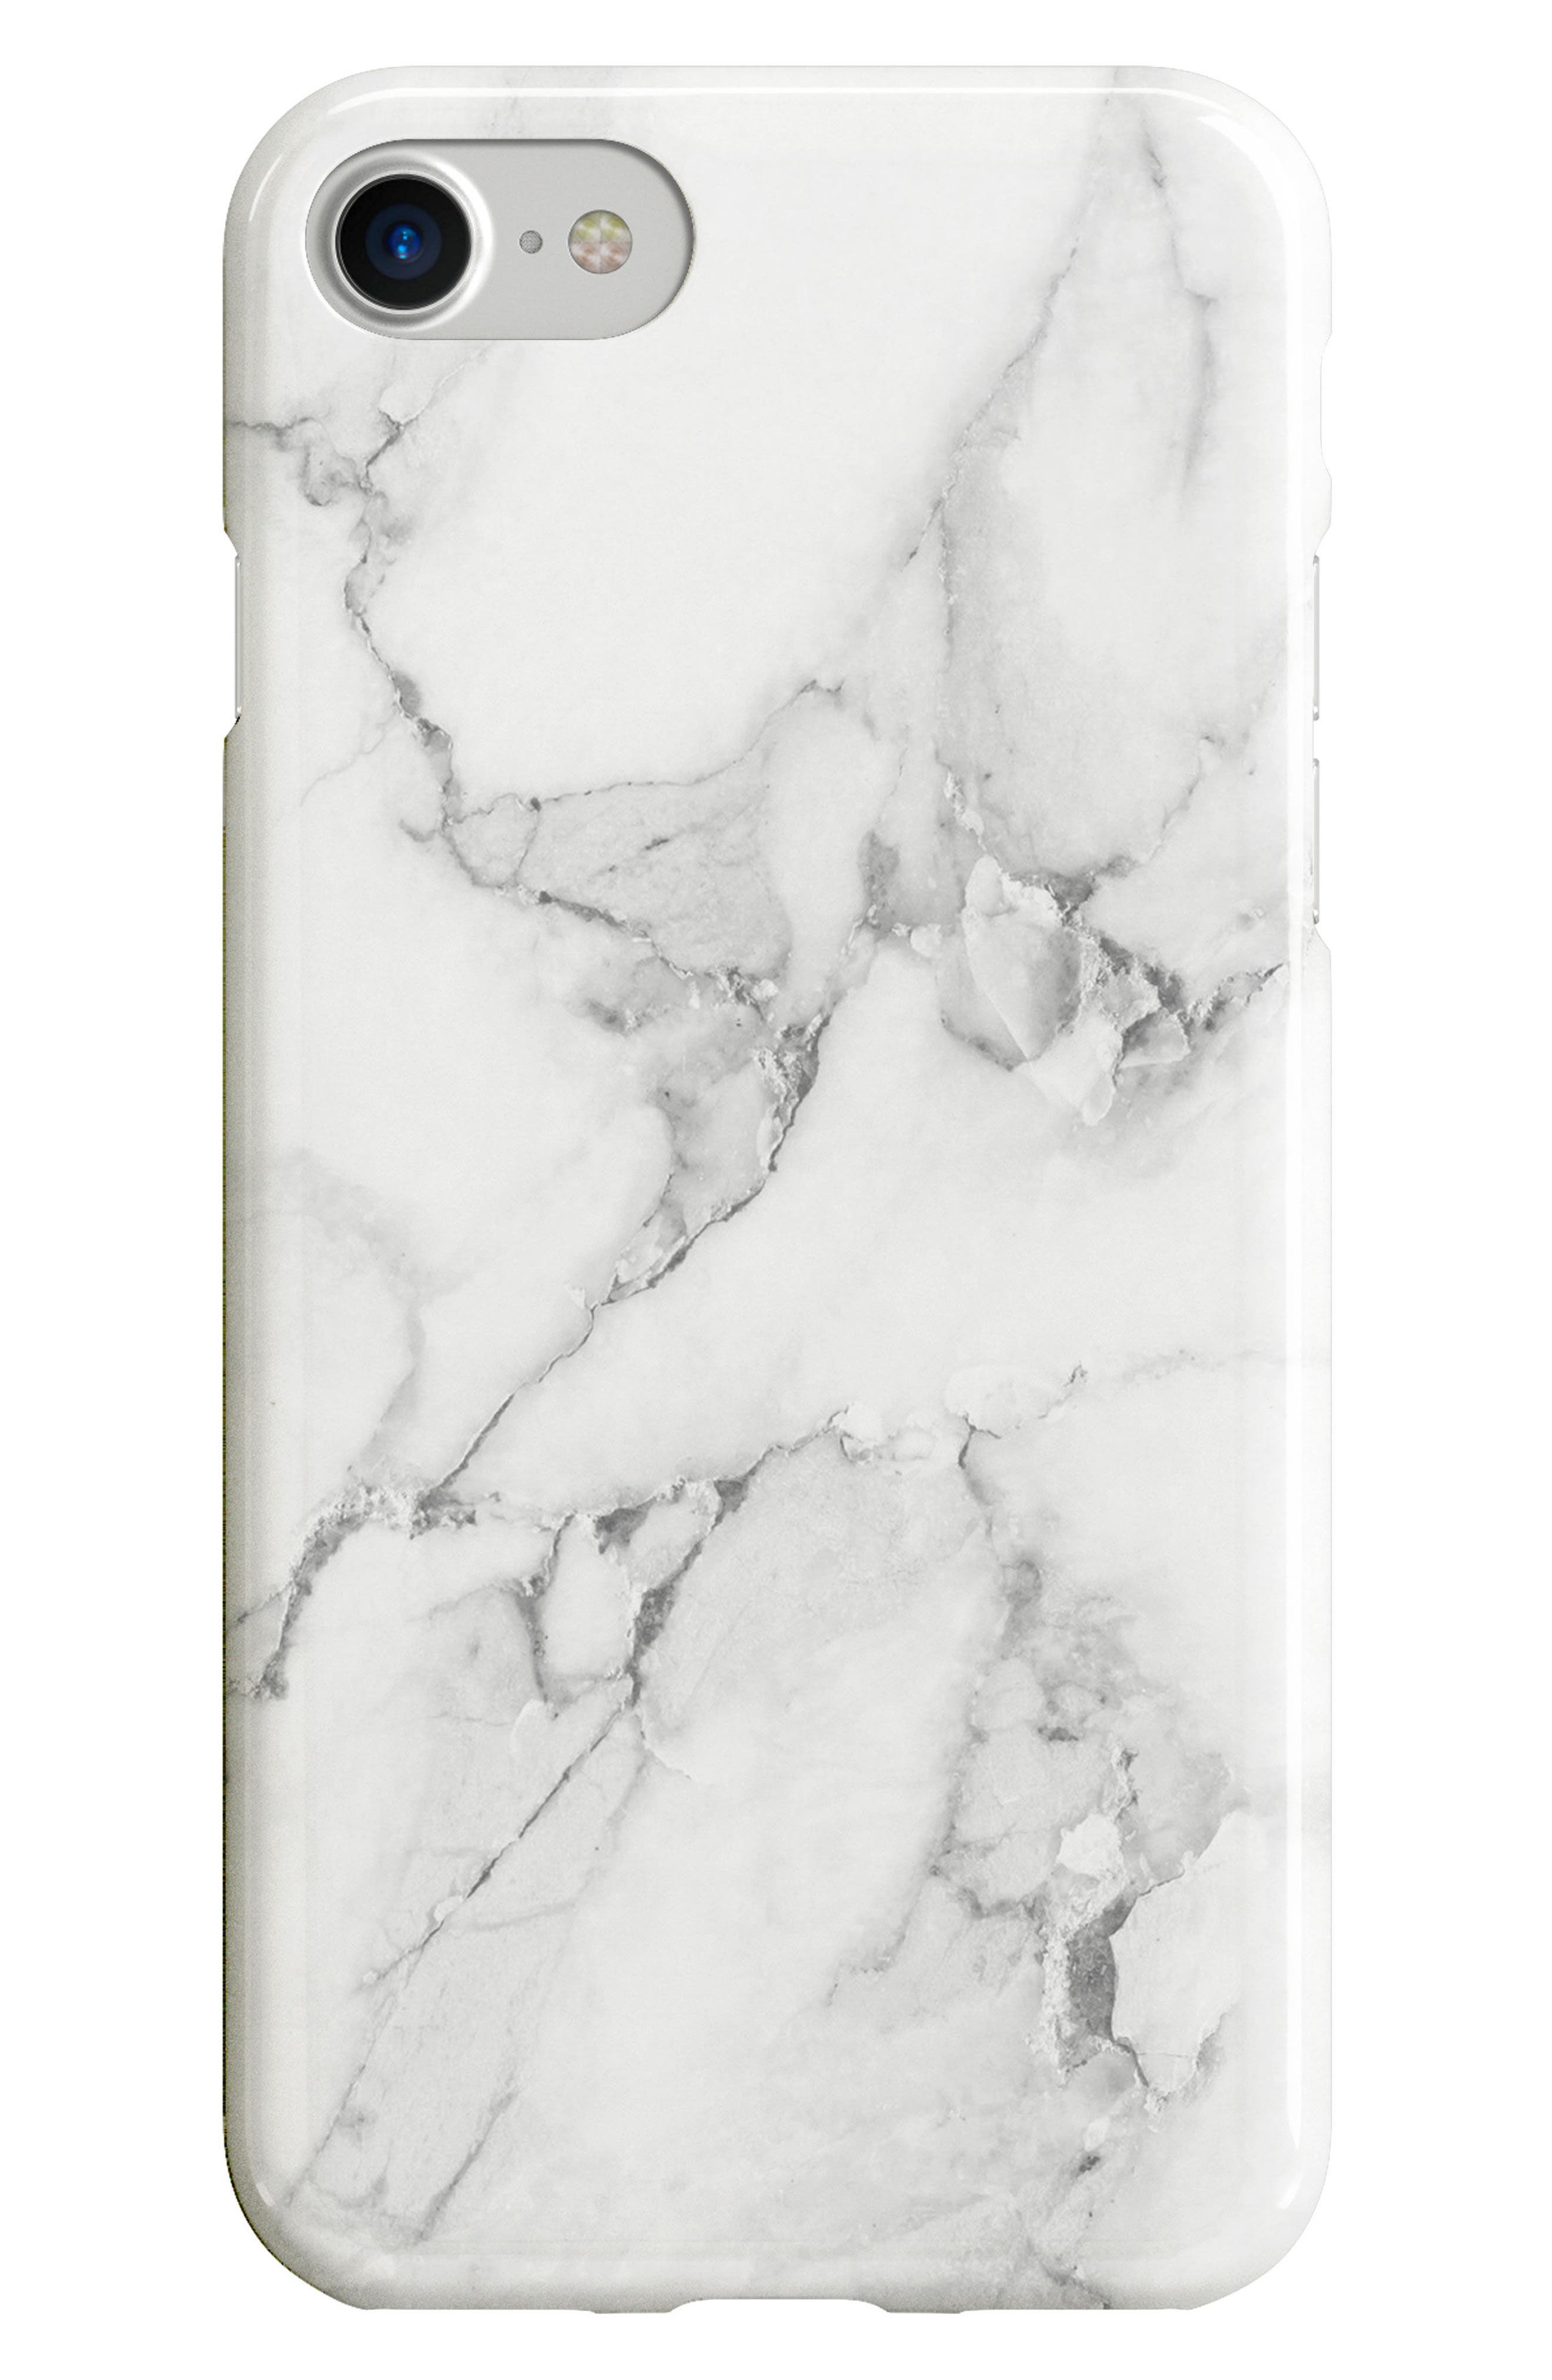 Alternate Image 1 Selected - Recover White Marble iPhone 6/7 Case